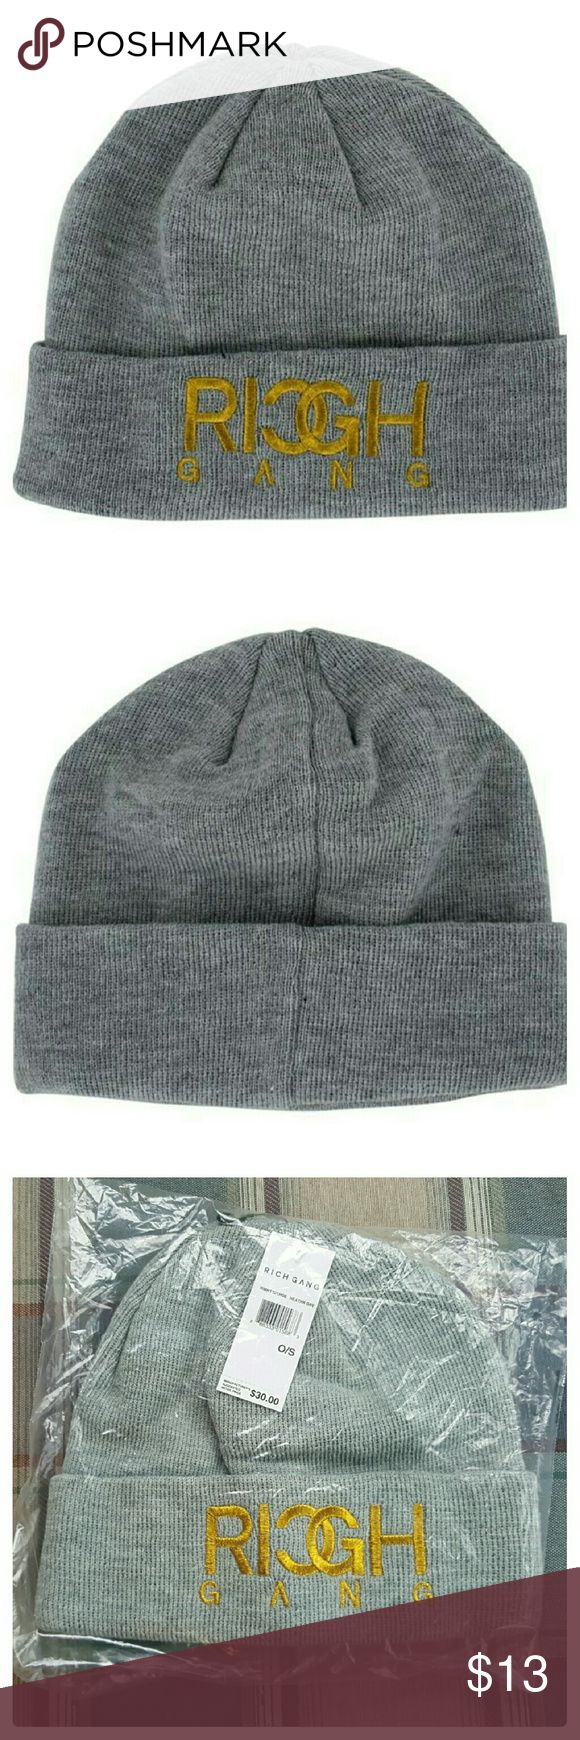 ⤵REDUCED⤵ **MENS** Rich Gang knit beanie NWT Heather gray beanie knit hat. Brand: Rich Gang. Brand new with tags and in package. Rich Gang Accessories Hats